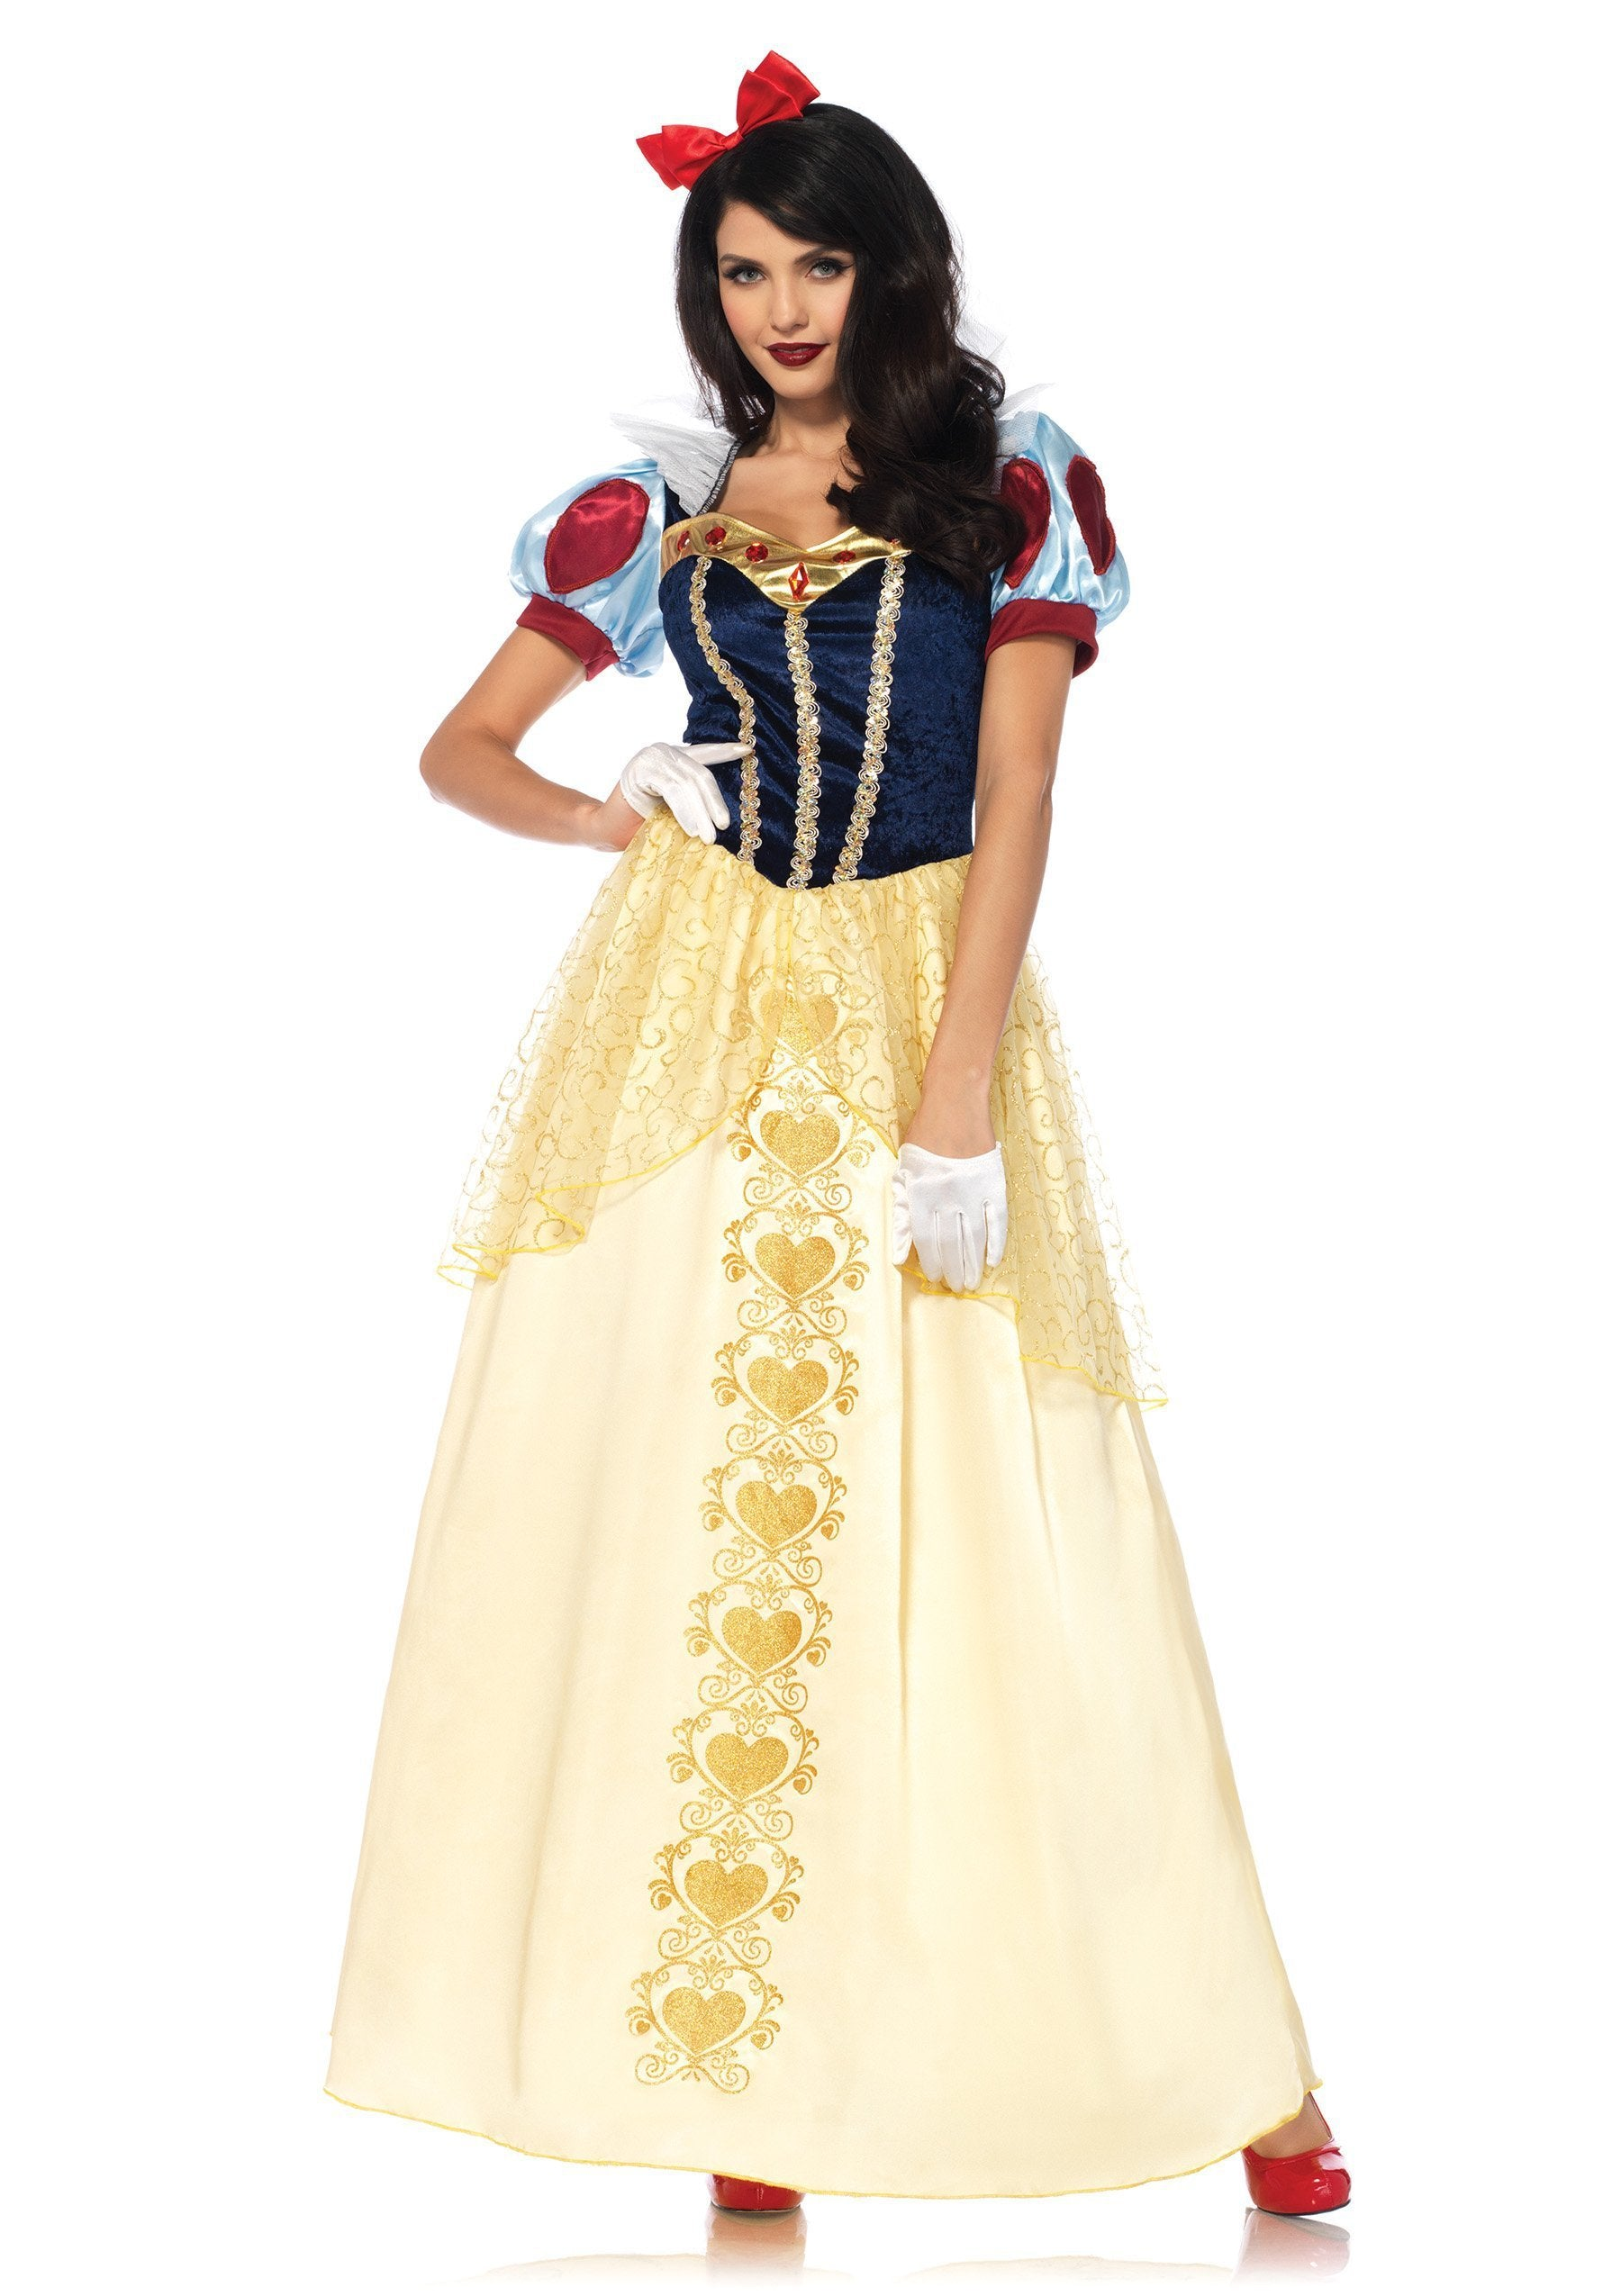 Leg Avenue Costumes LARGE Adult Deluxe Snow White Costume